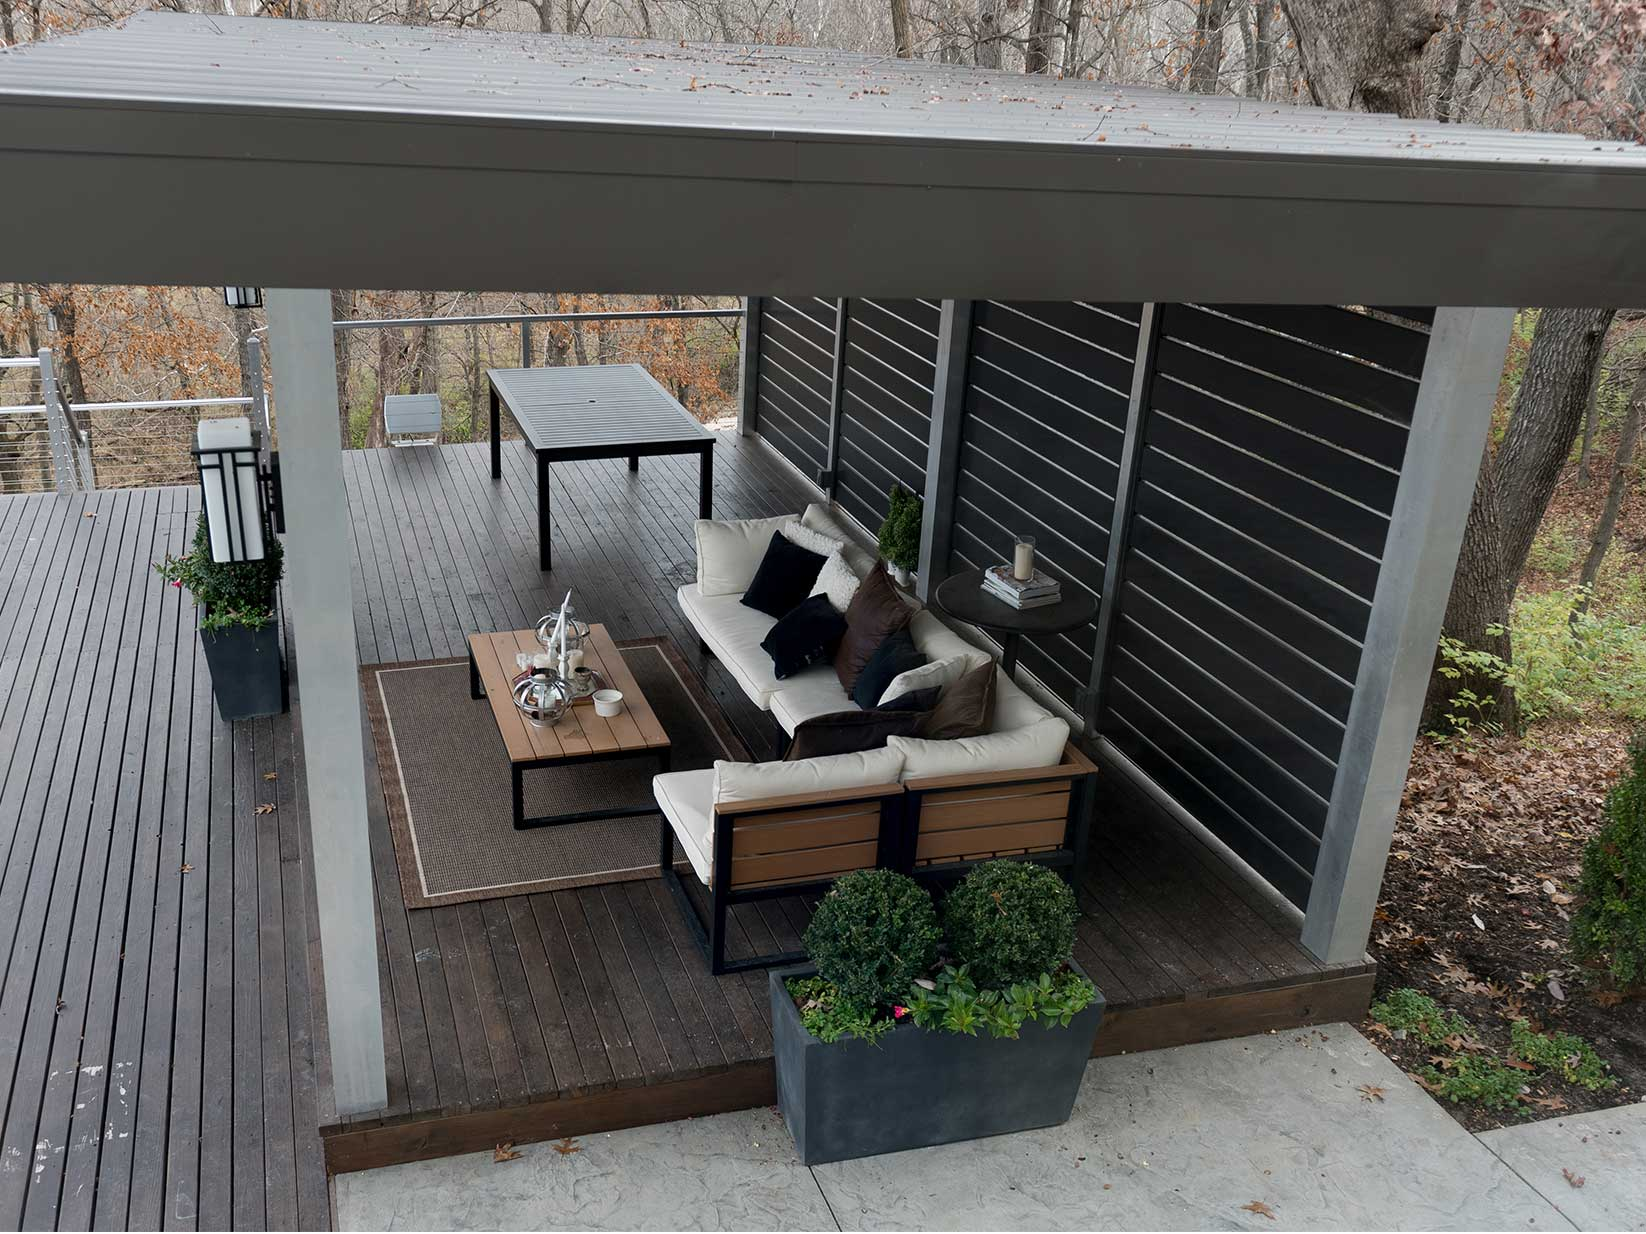 midwest-remodeling-exterior-deck-remodel-4x3